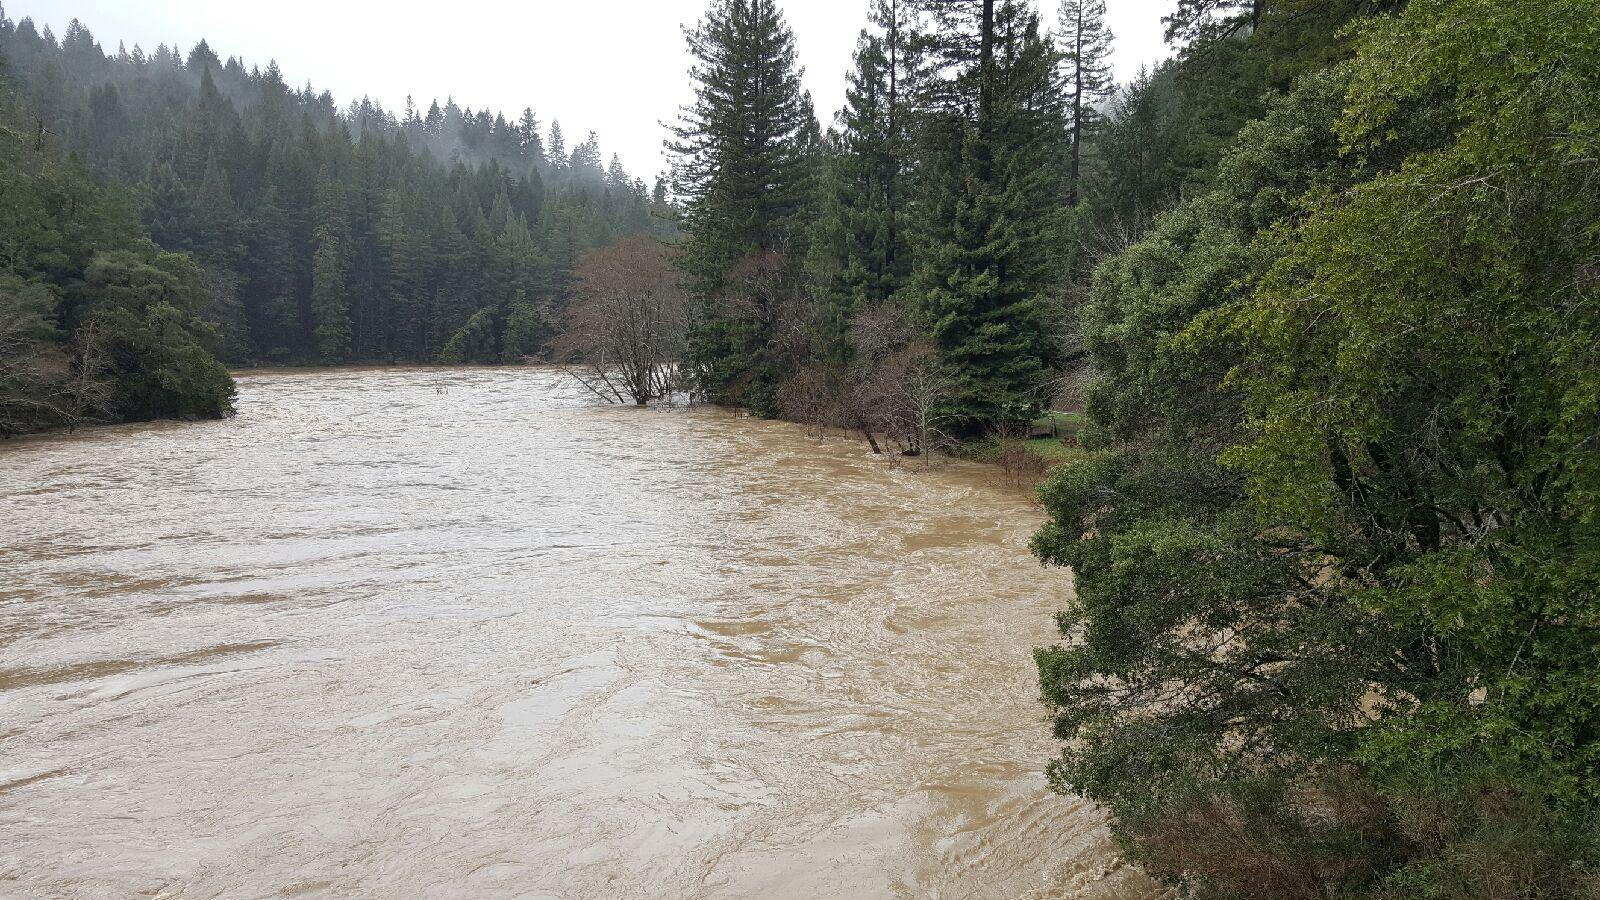 This picture was taken by Jamie Bowers on February 10, 2017 from the HWY 1 bridge at Mill Bank on the South Fork Eel River near Legit, Ca.